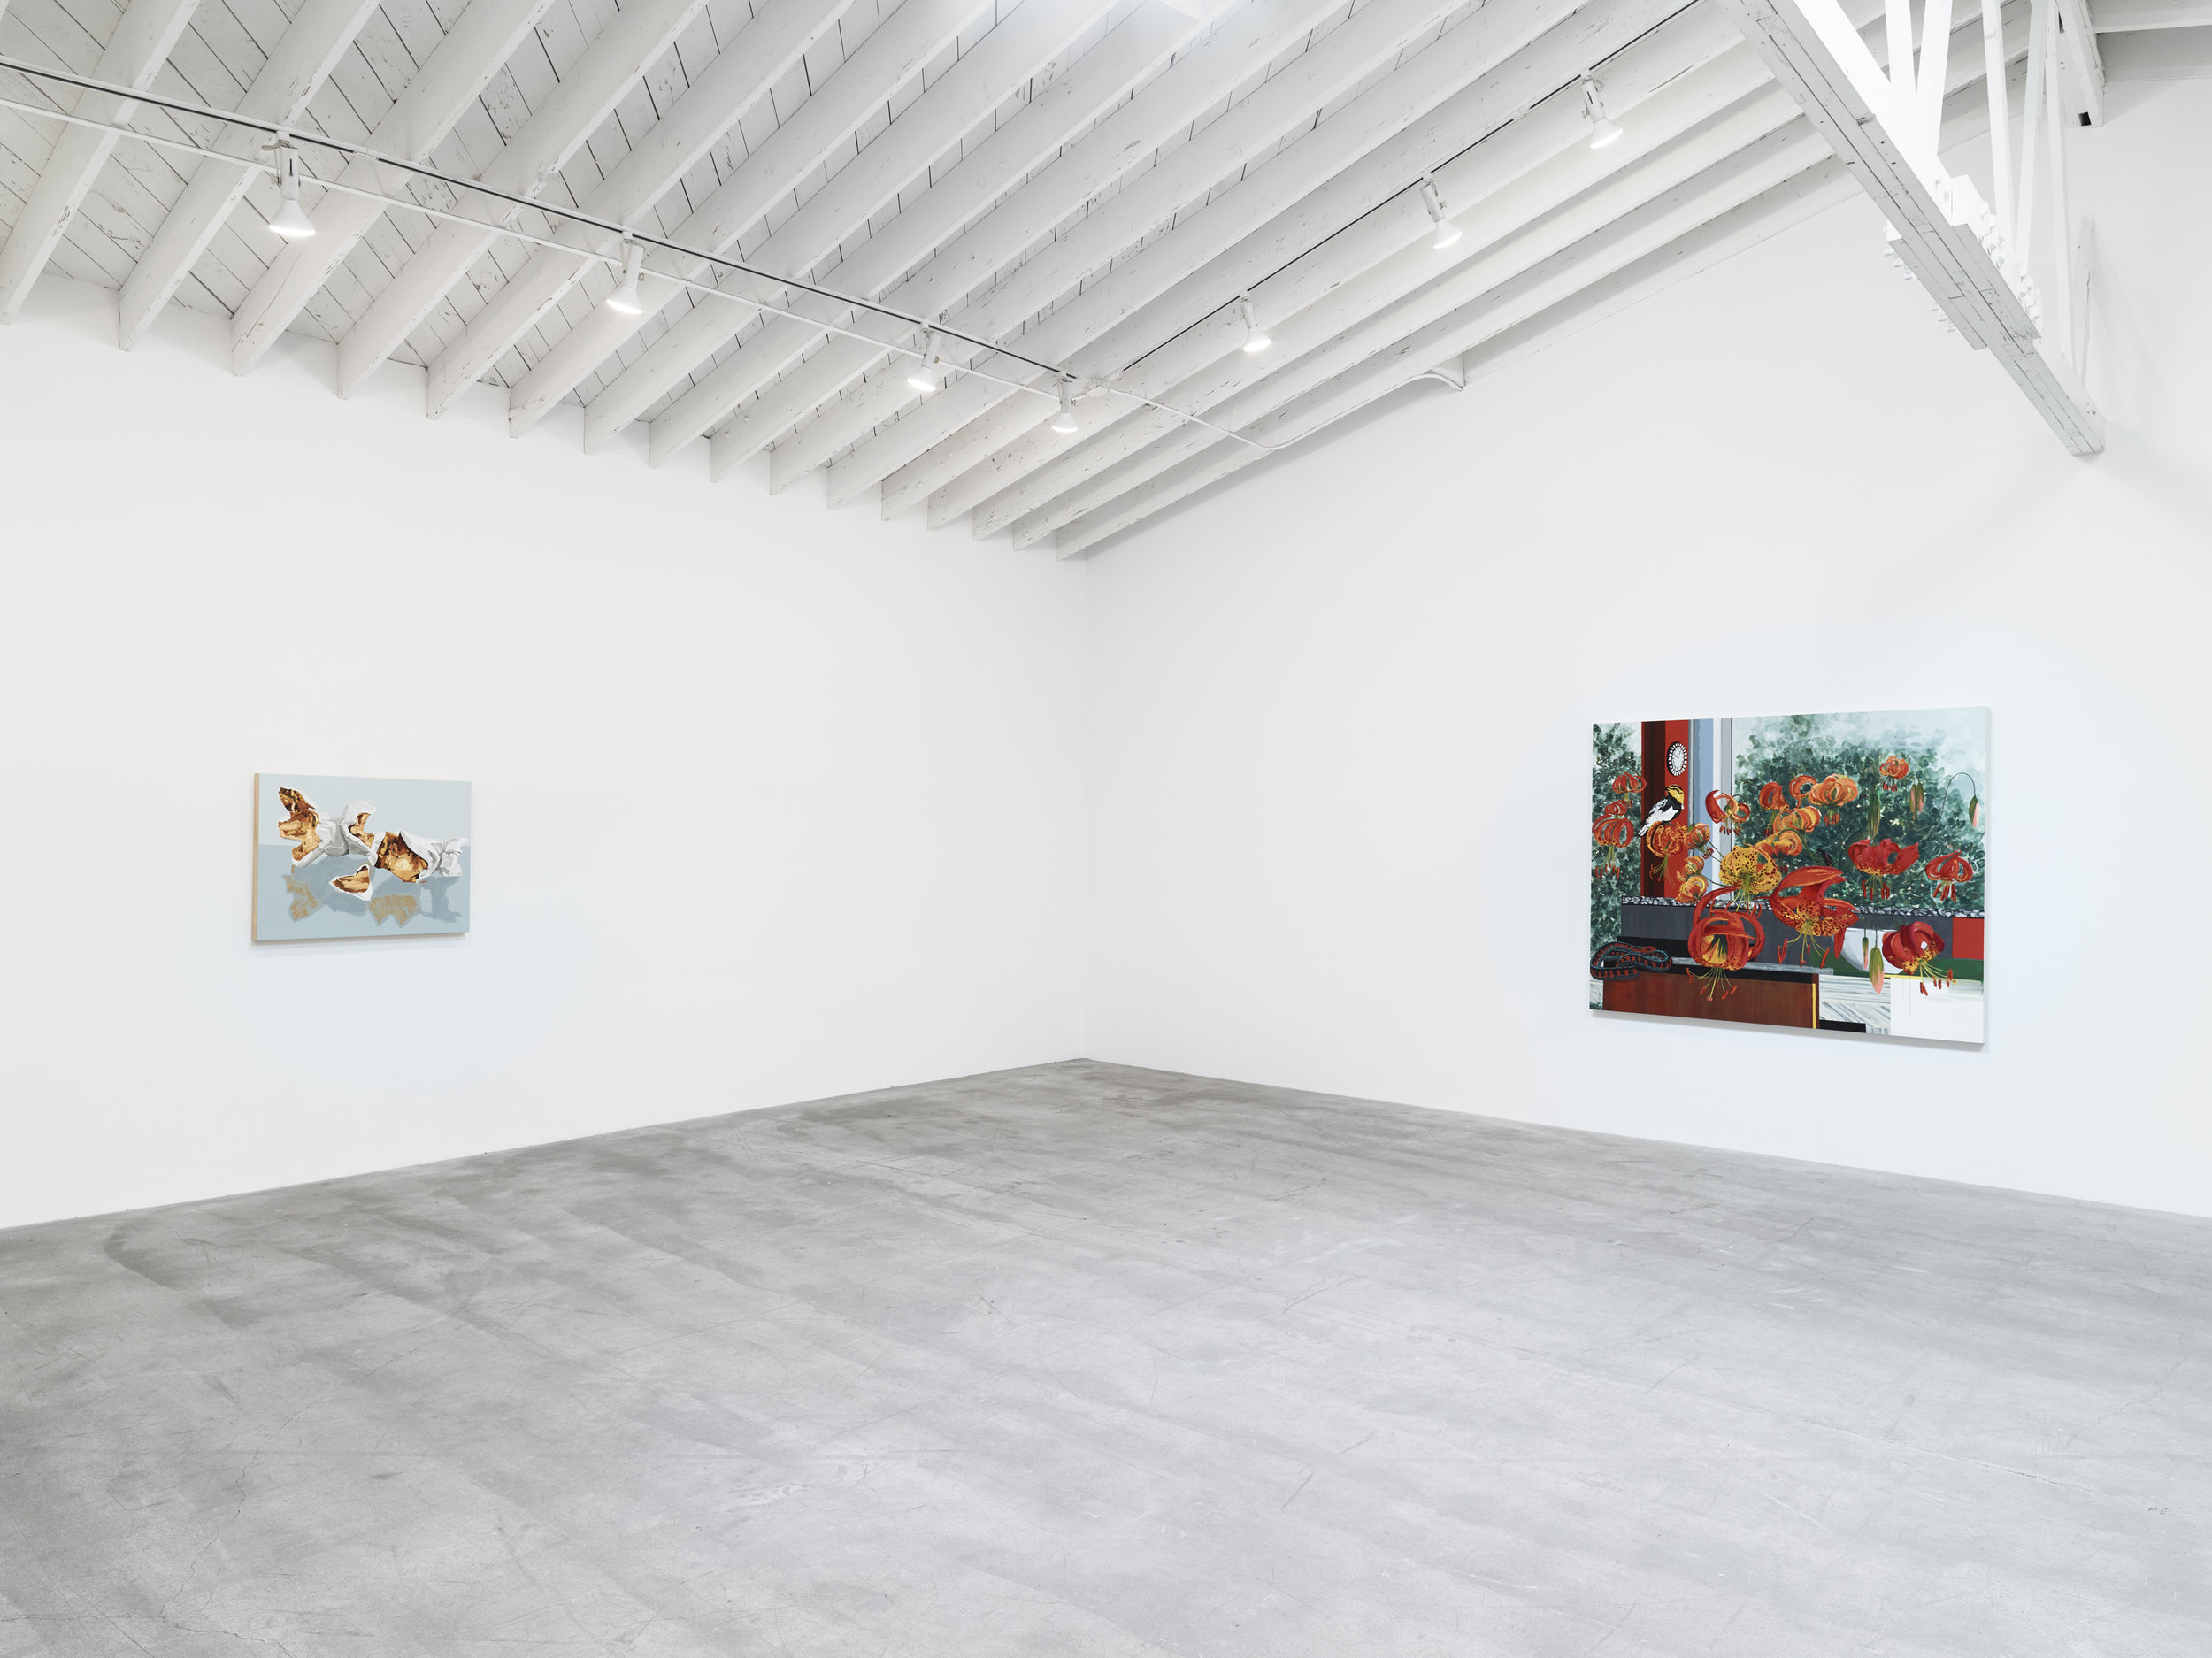 Kirsten Everberg, Life Still, 2019. Installation view 1301PE.